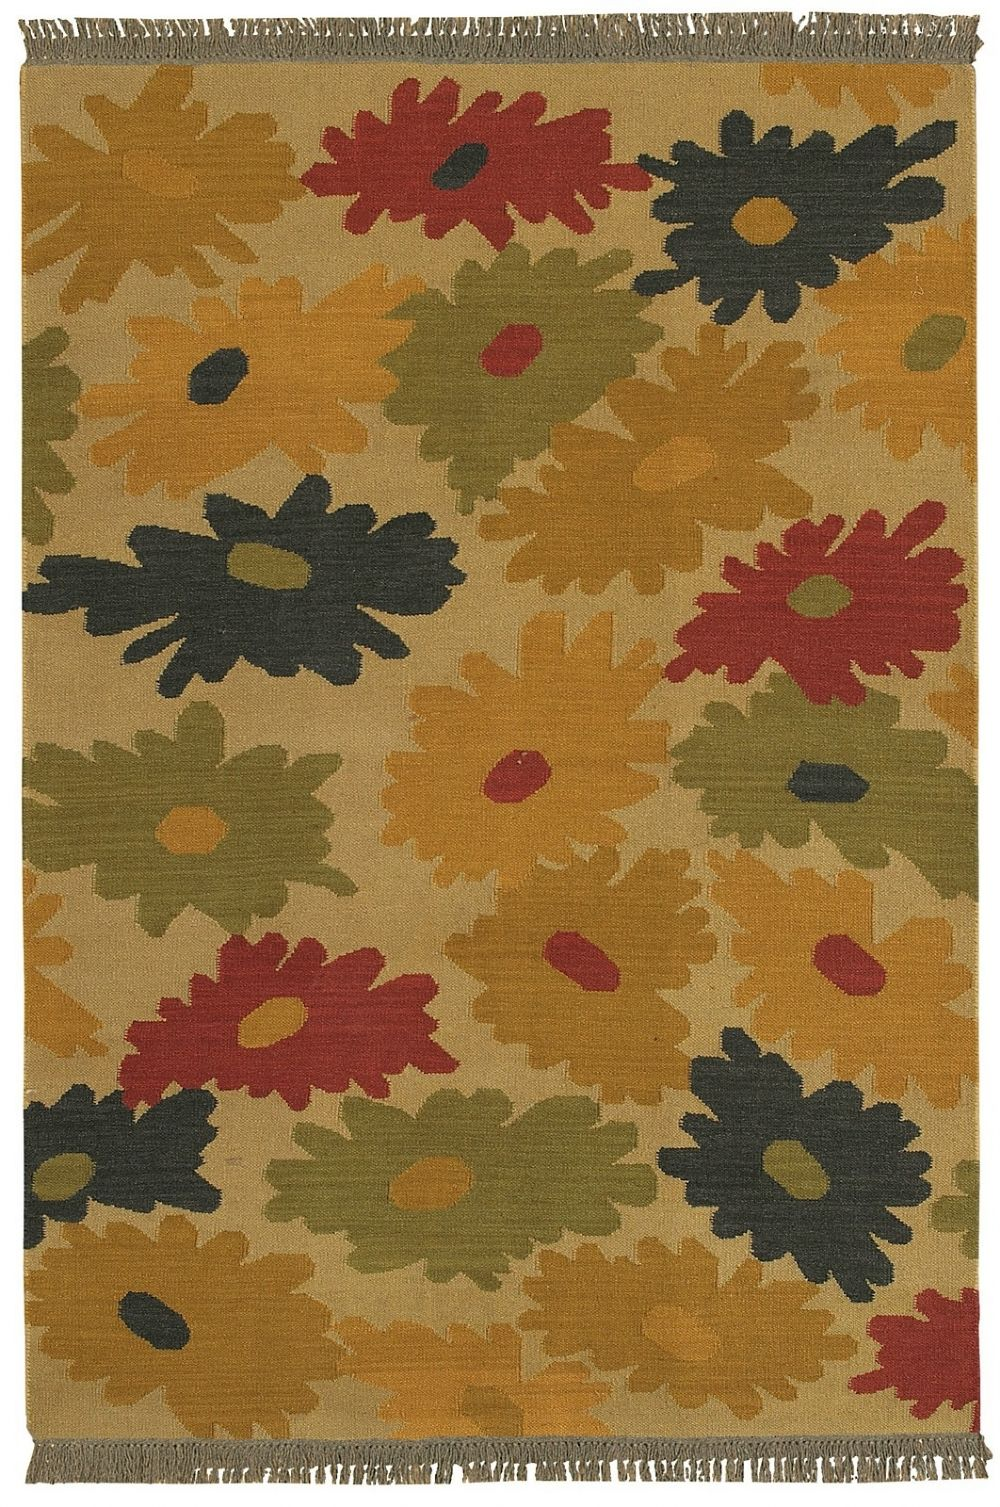 surya jewel tone country & floral area rug collection